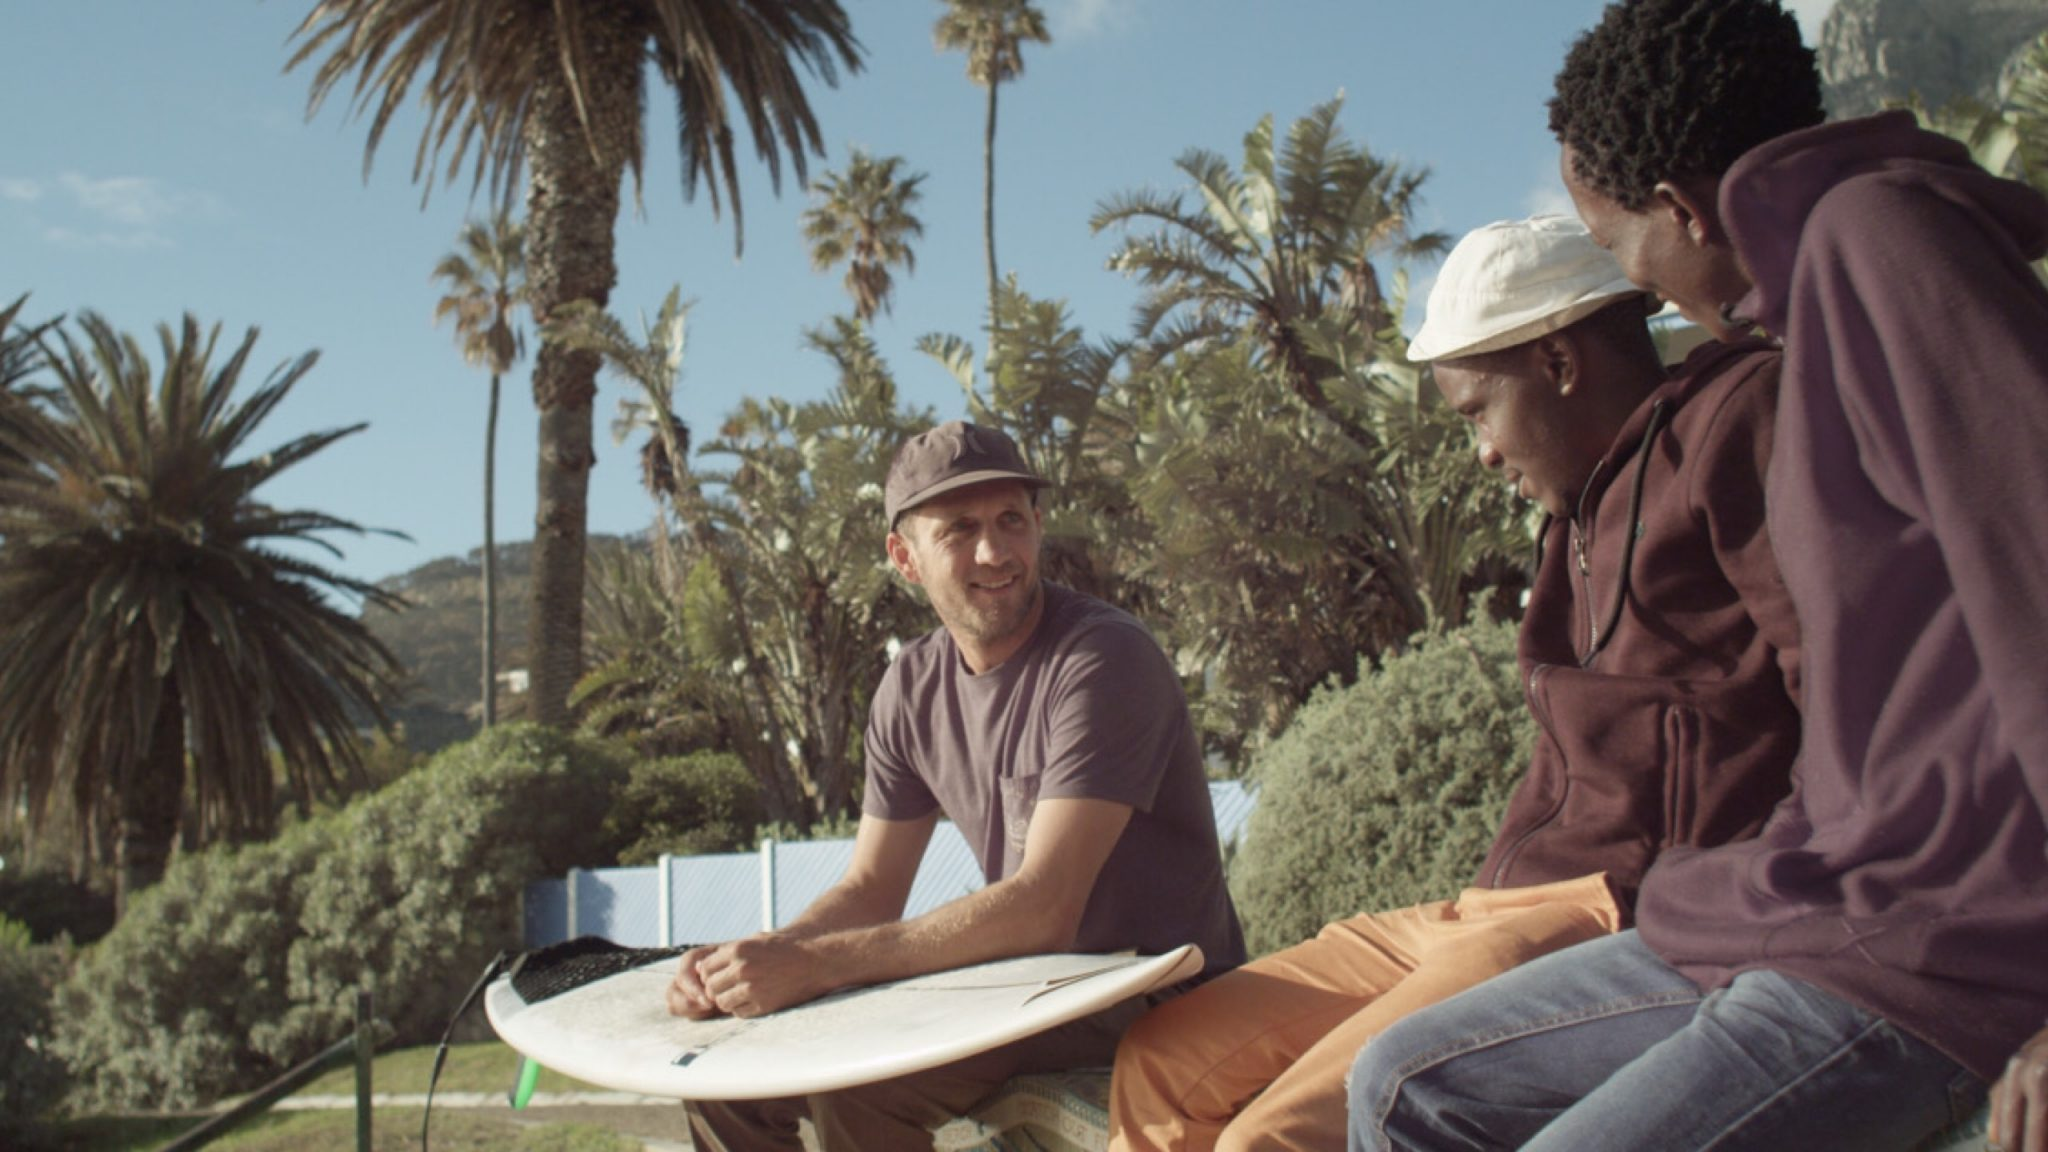 Unlikely friendship blossoms between marine activist and Johannesburg street surfers